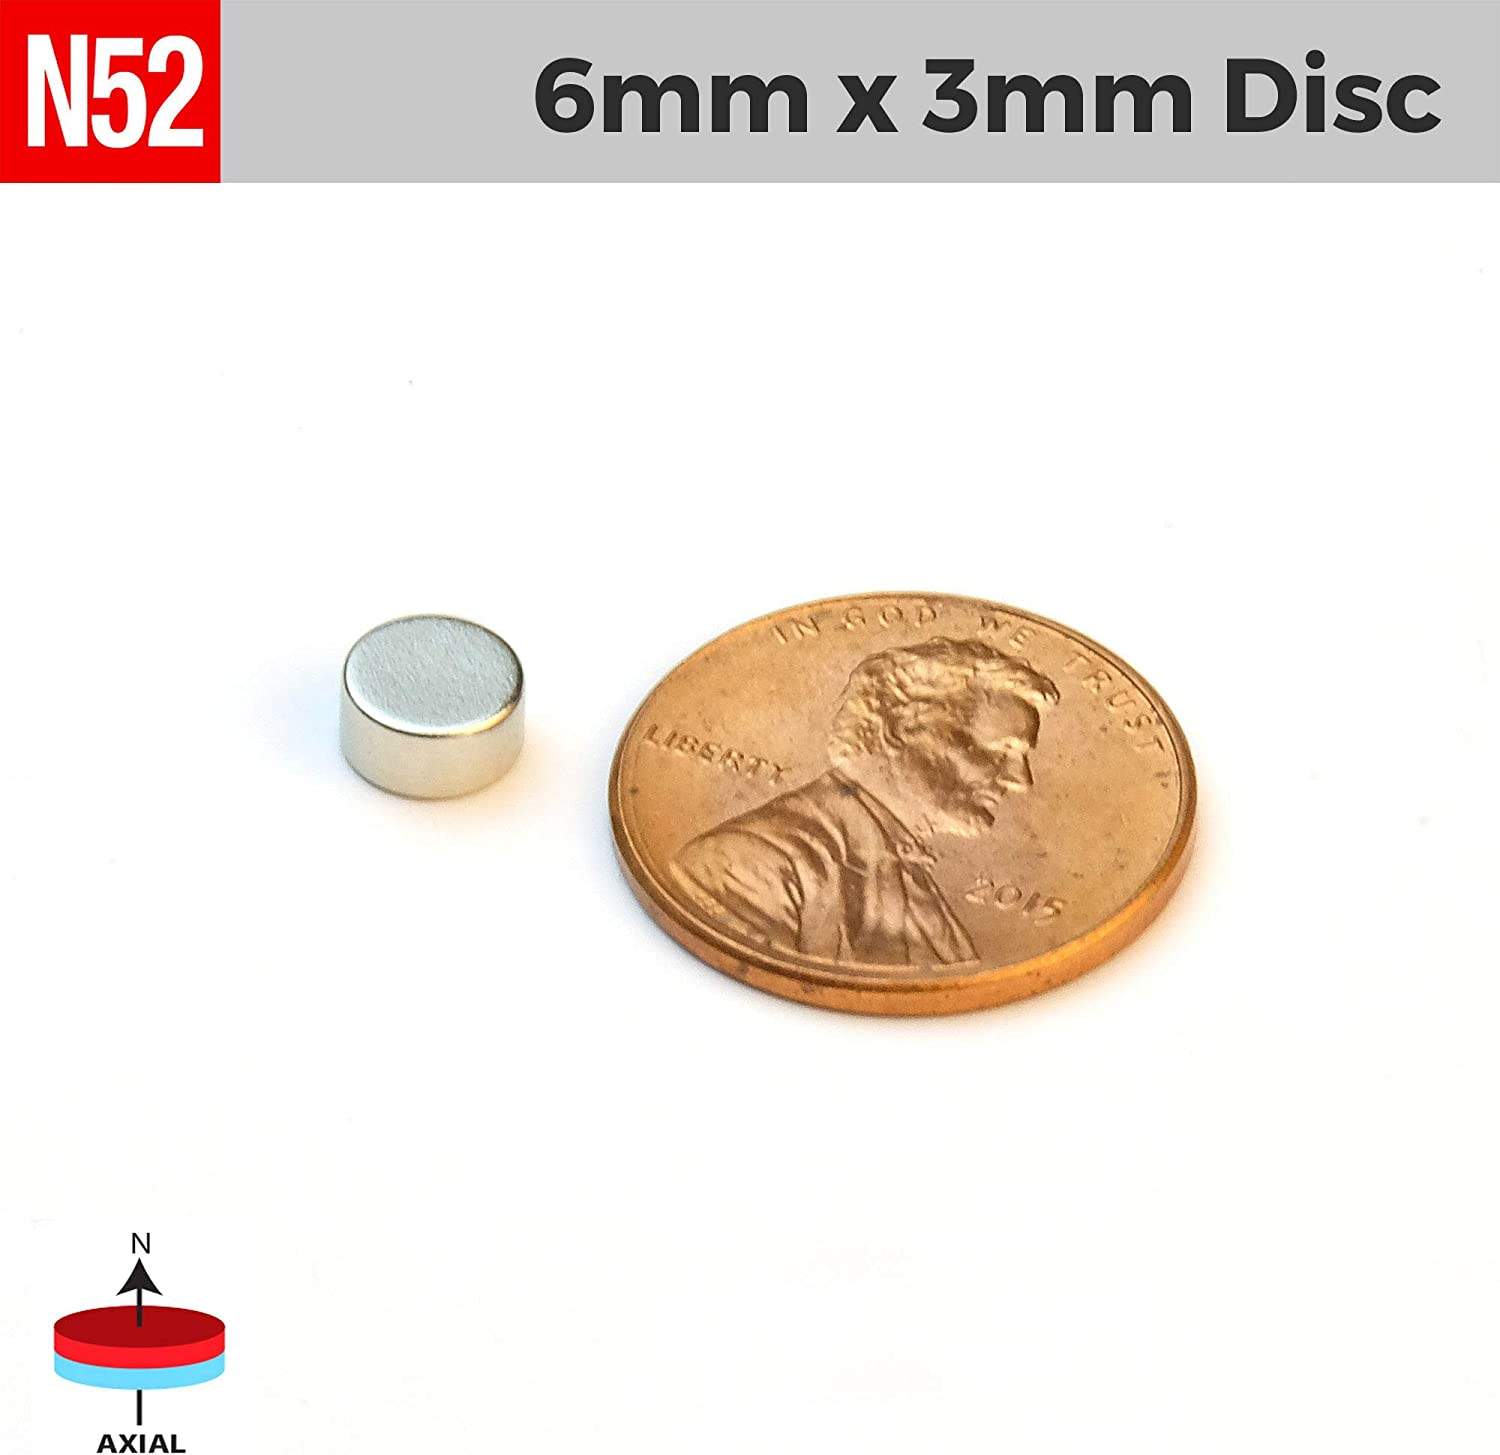 Arts 100pcs 3mm x 1mm 1//8 x 1//32 Small Tiny Round Disc Magnets for Refrigerator DIY Science Crafts by NEOGAUSS N52